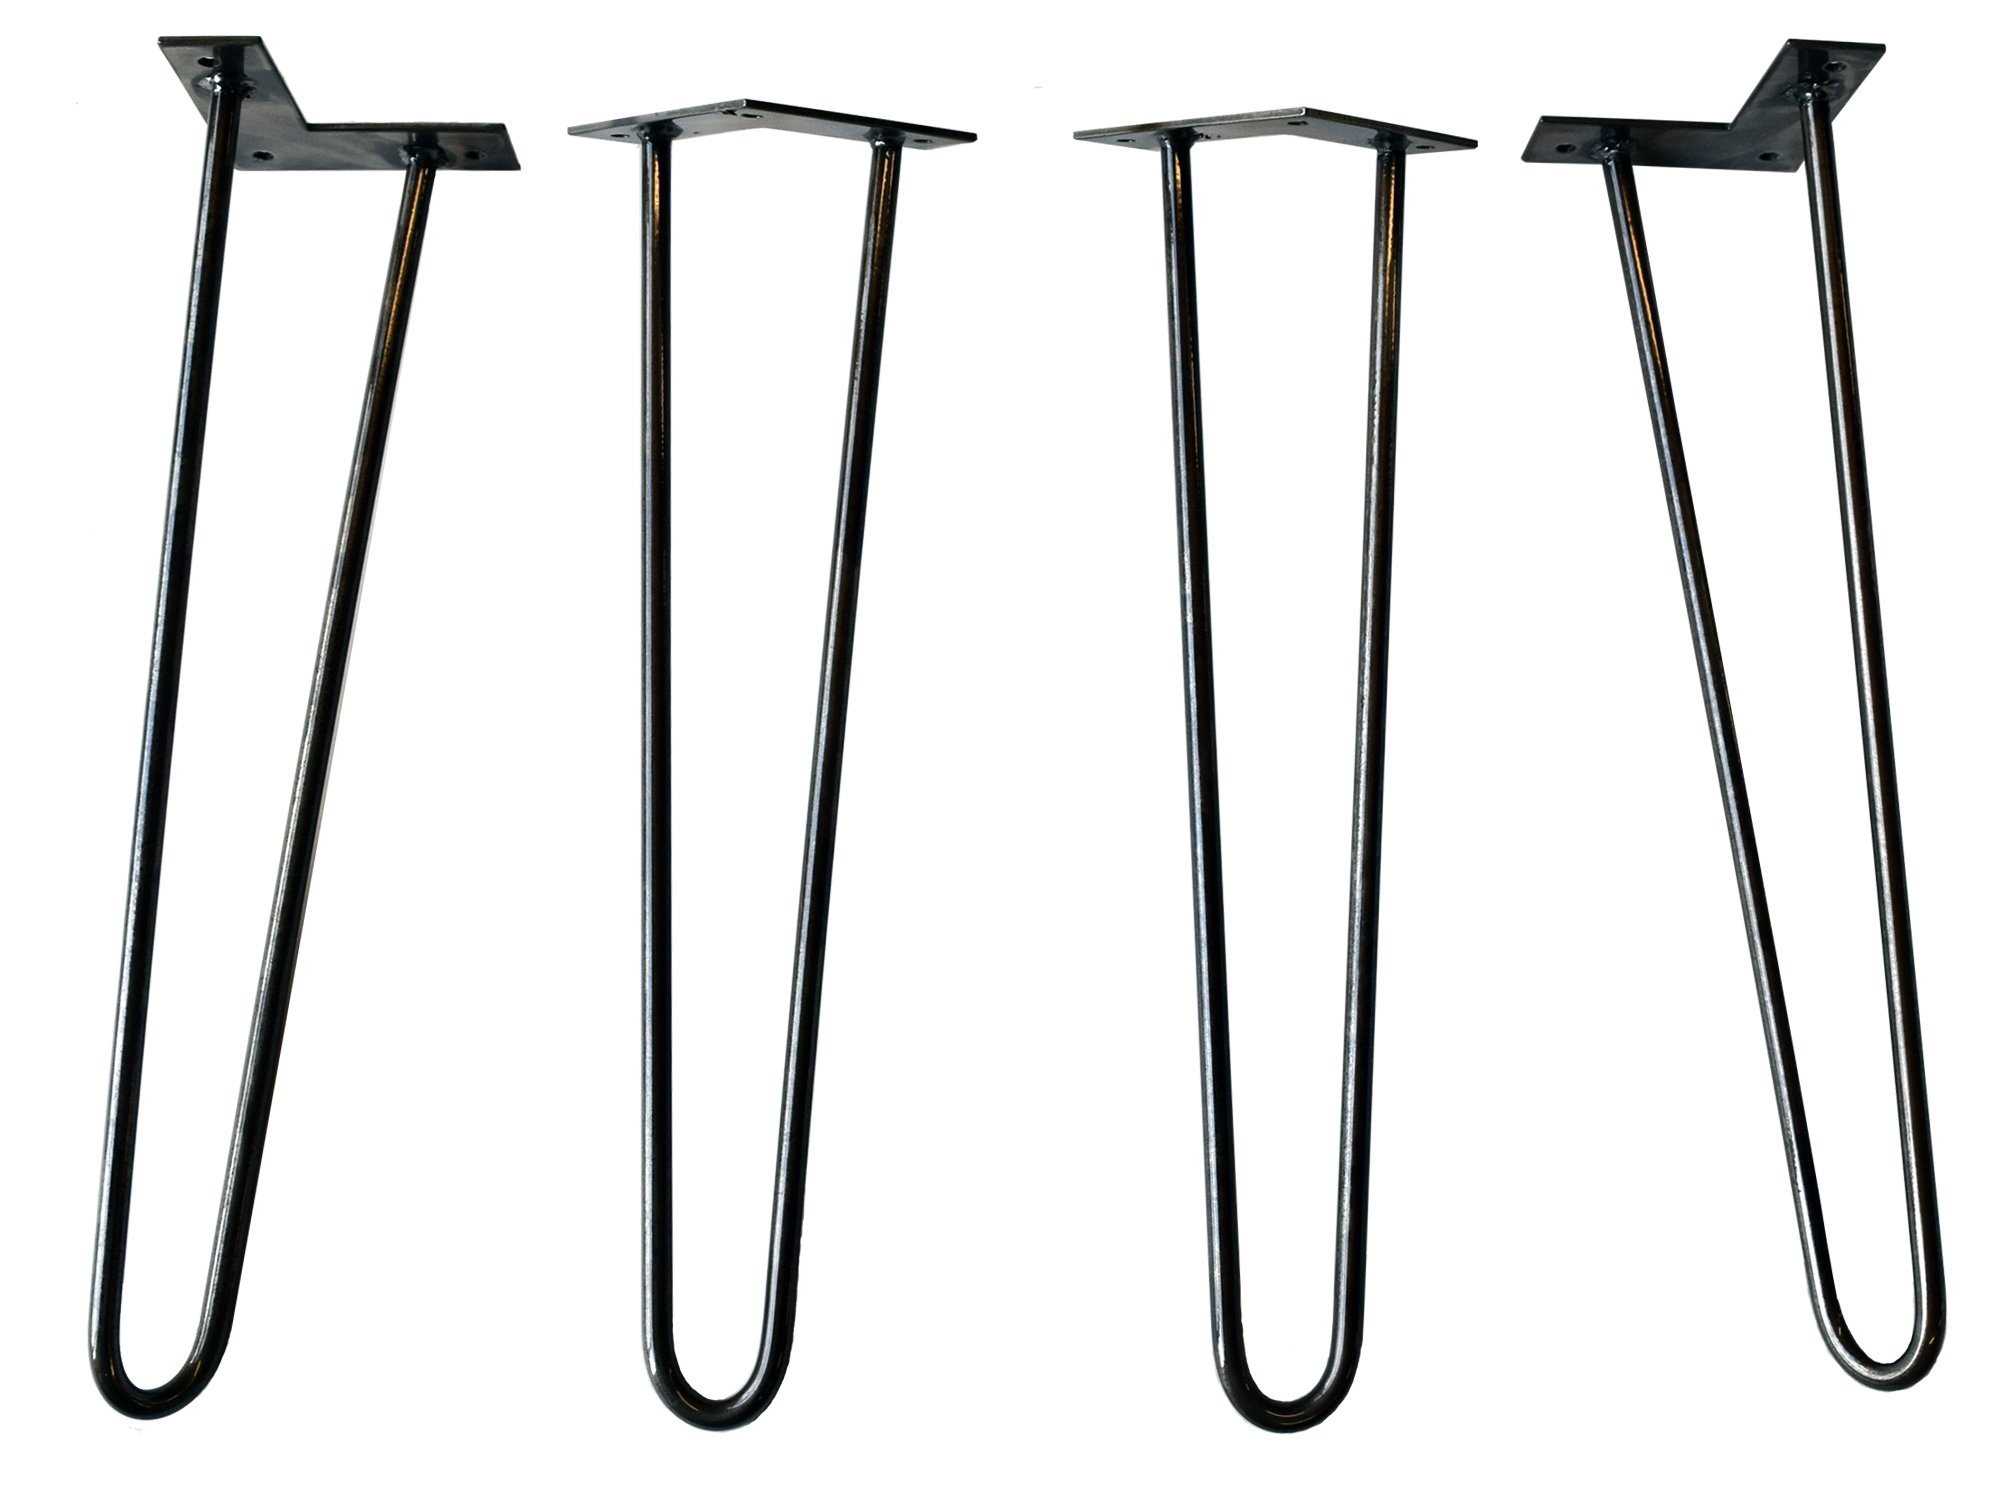 Original Hairpin Legs - Made in USA - Cast & Grain - Set of 4 (14 in, Clear Coat)